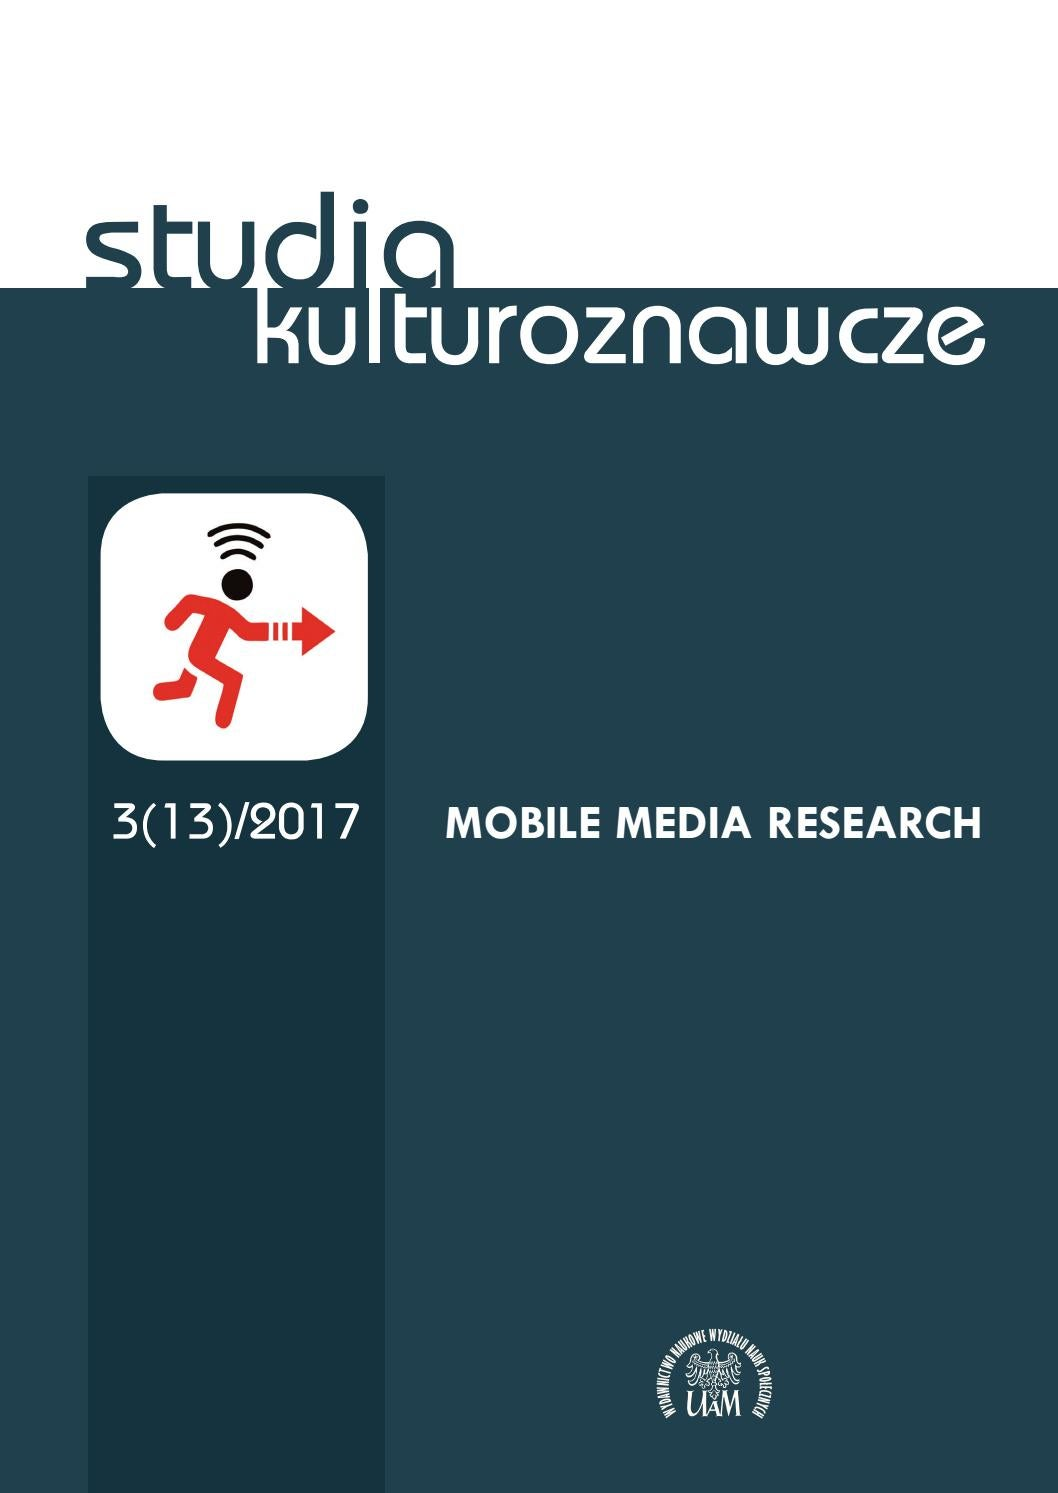 Studia Kulturoznawcze 3(13)/2017 - Mobile Media Research by